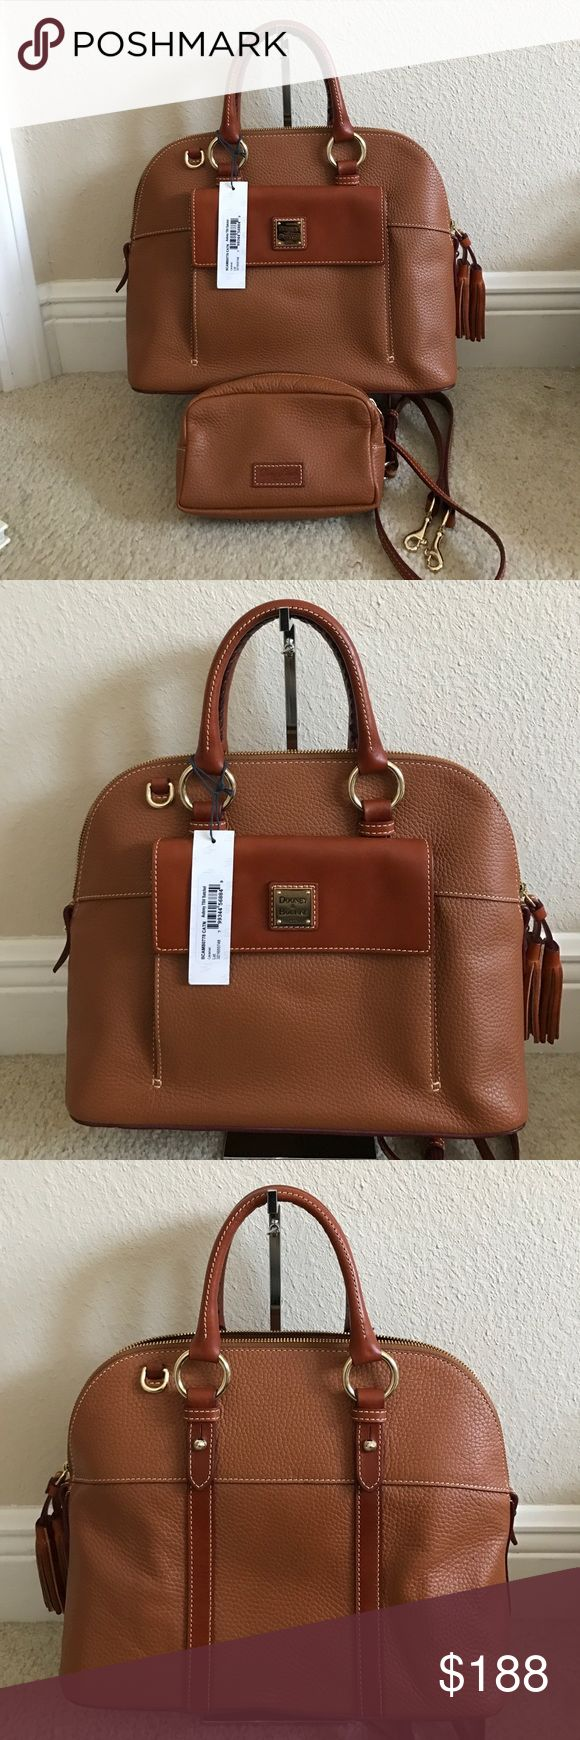 """Dooney&Bourke Pebble Leather Aubrey Satchel w/acc Preown in great condition. Comes with accessories. Color caramel. Back right has some wrinkles. Approximate measurements: Satchel 13""""W x 11""""H x 5-3/4""""D with a 4-1/2"""" handle drop and a 20"""" to 23"""" strap drop, weighs approximately 2 lbs, 14 oz; Cosmetic case 6-3/4""""W x 4""""H x 2-1/4""""D Body/trim 100% leather; lining 100% cotton Dooney & Bourke Bags Satchels"""